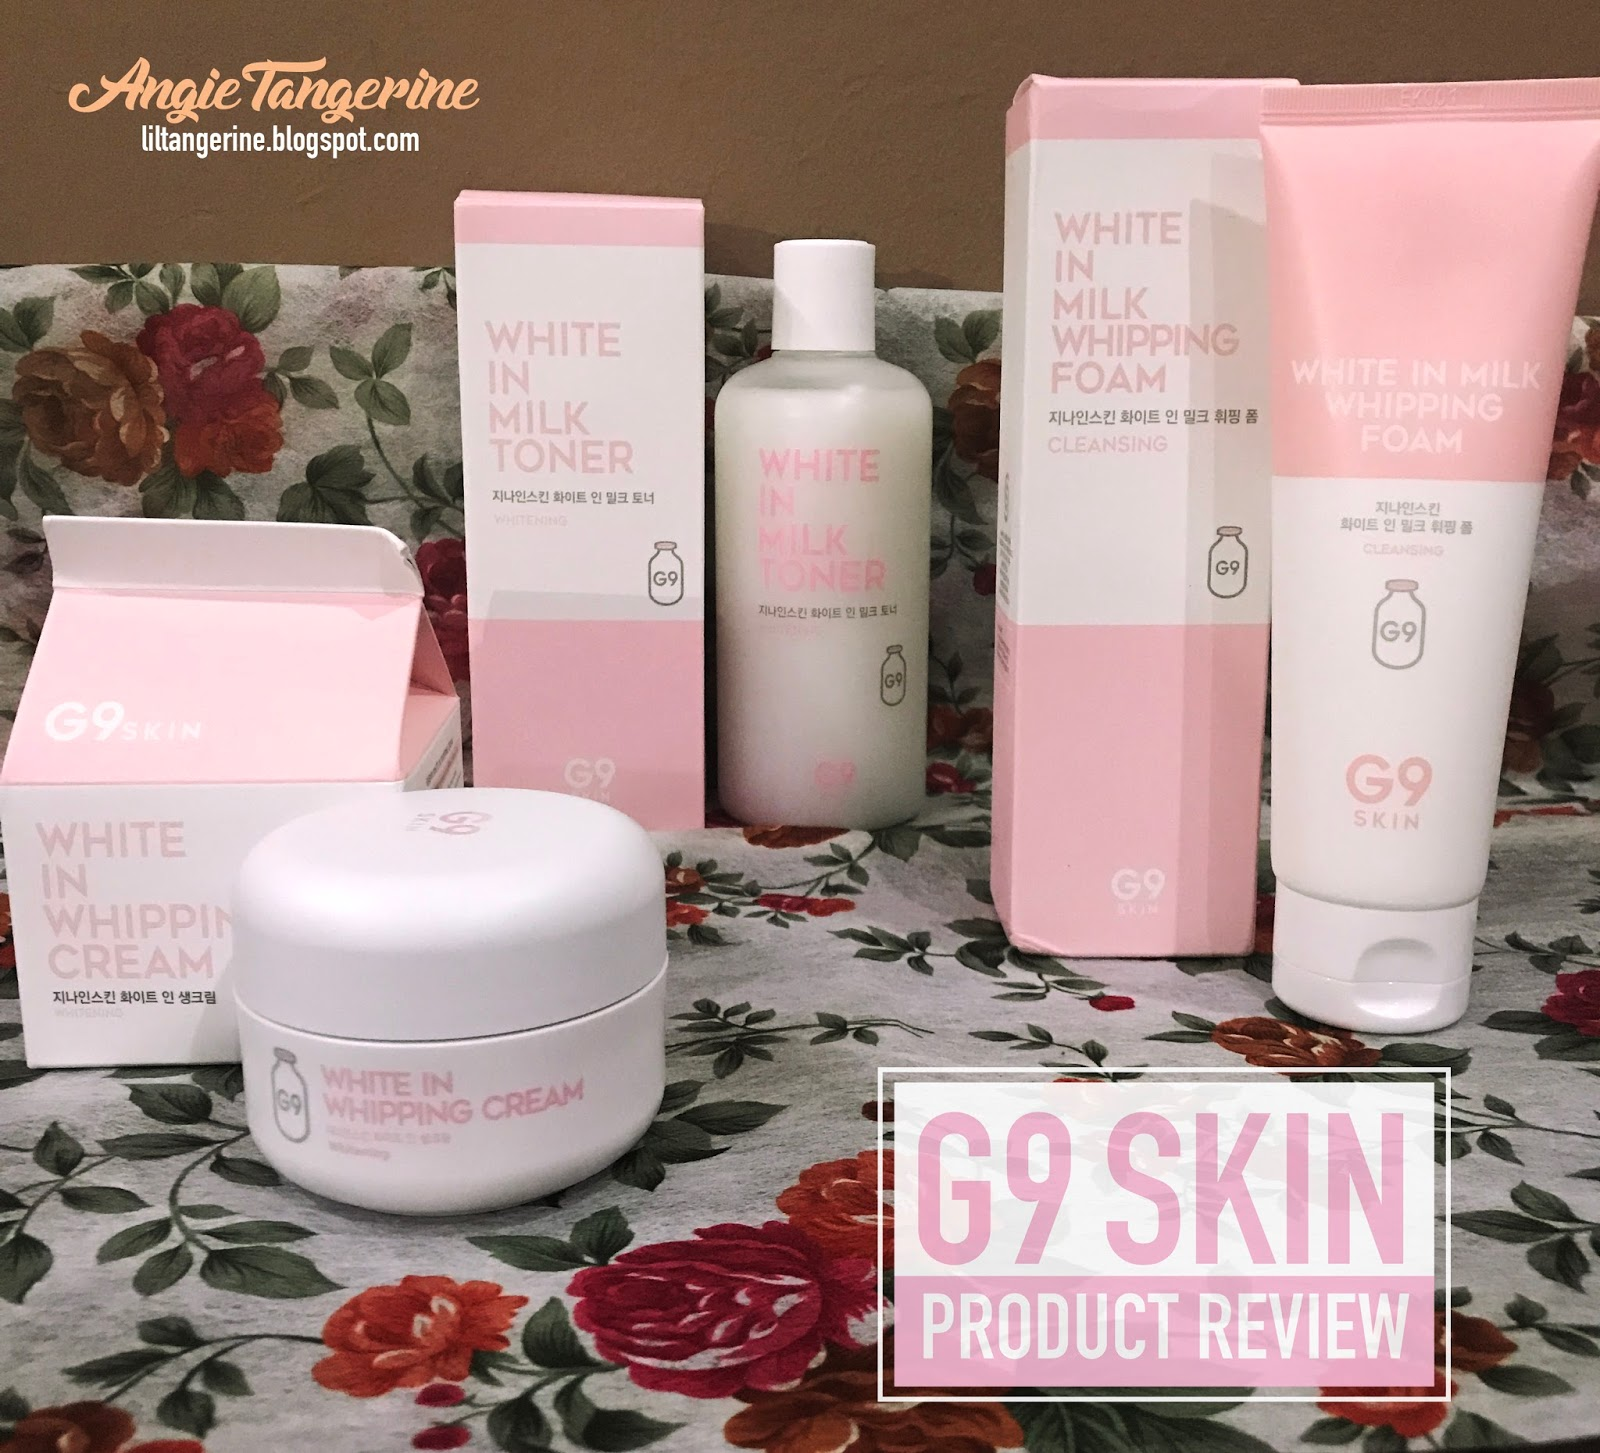 [Beauty Review] G9 Skin Whitening Products from Korea